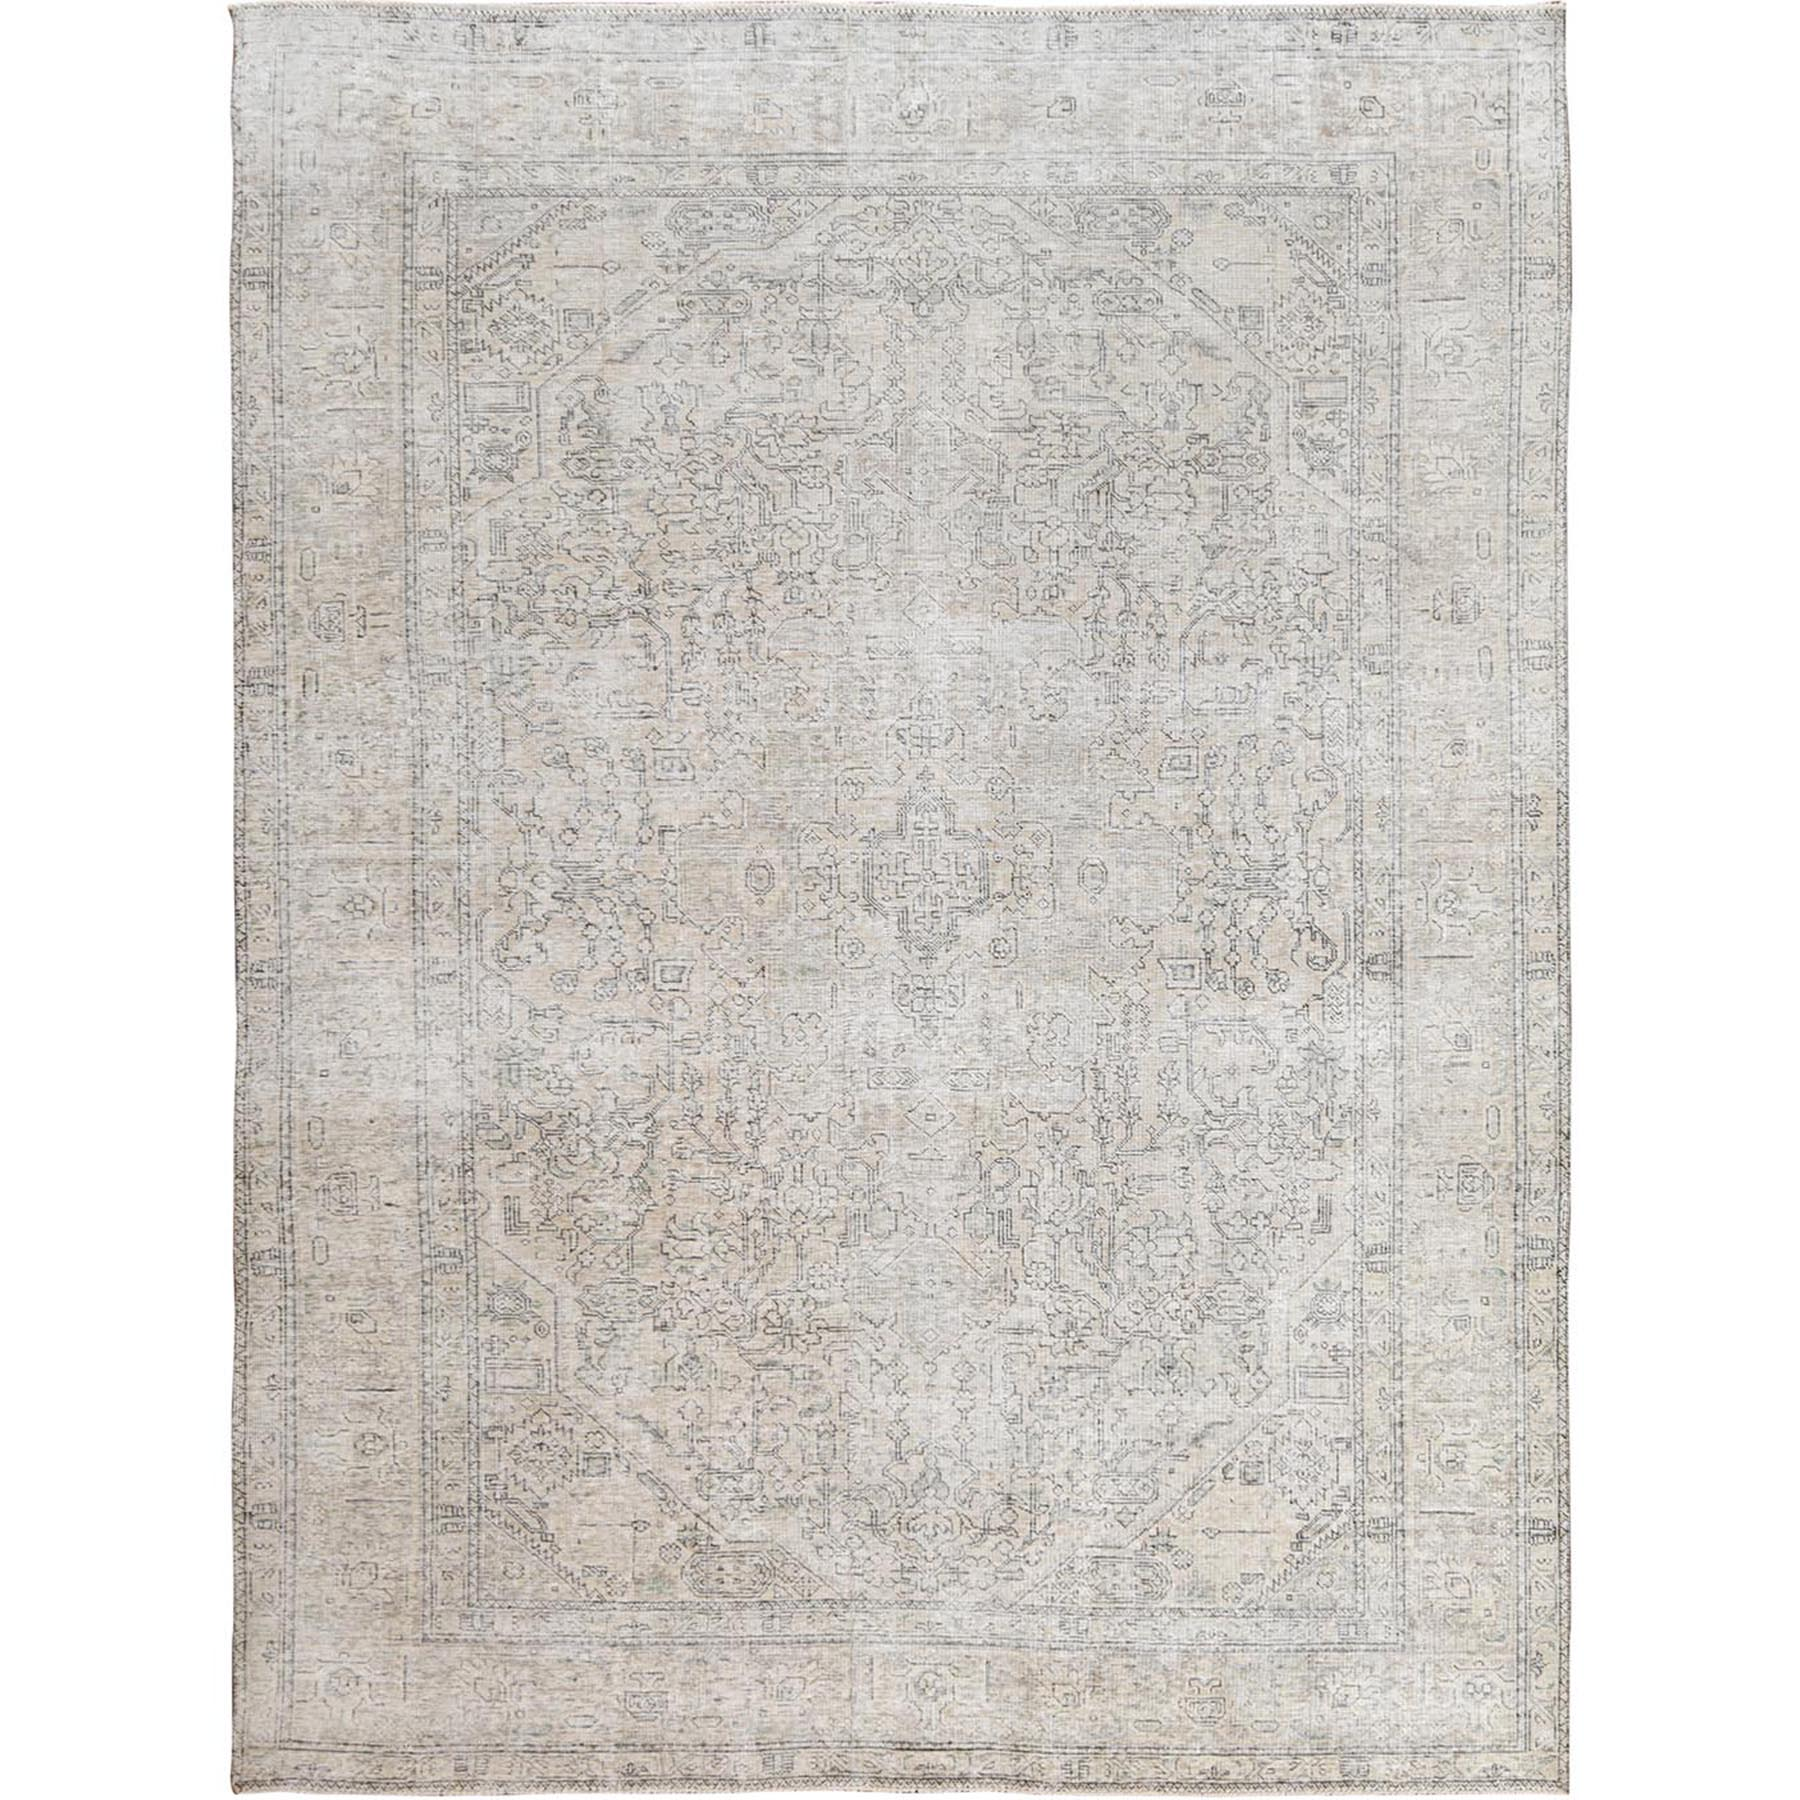 8'x11' Beige Clean Pure Wool Shabby Chic Distressed Vintage Look Persian Tabriz Medallion Design Hand Woven Oriental Rug